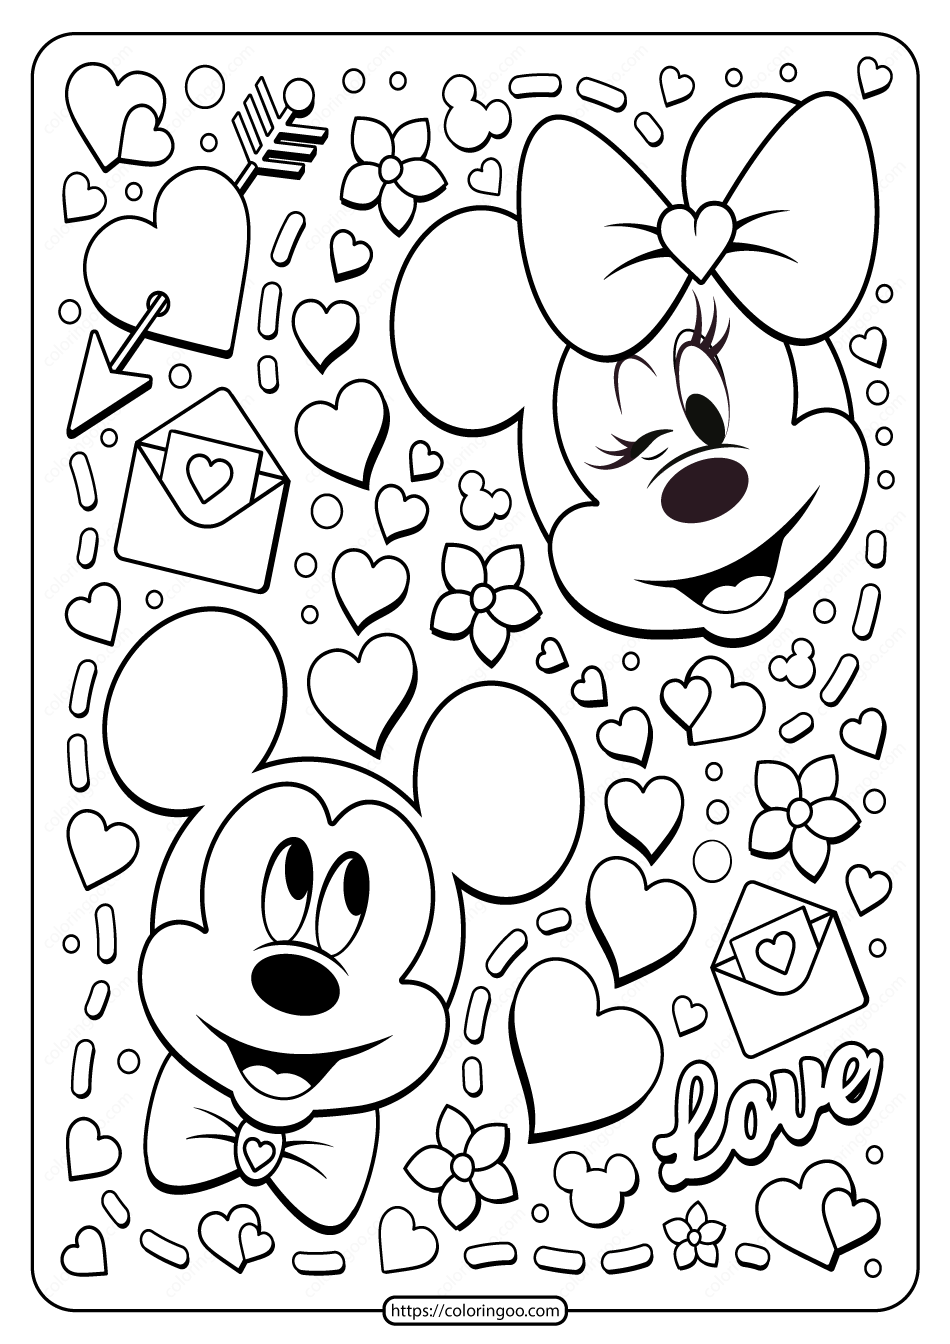 coloring sheets aesthetic aesthetic coloring pages for kids aesthetic coloring sheets coloring aesthetic